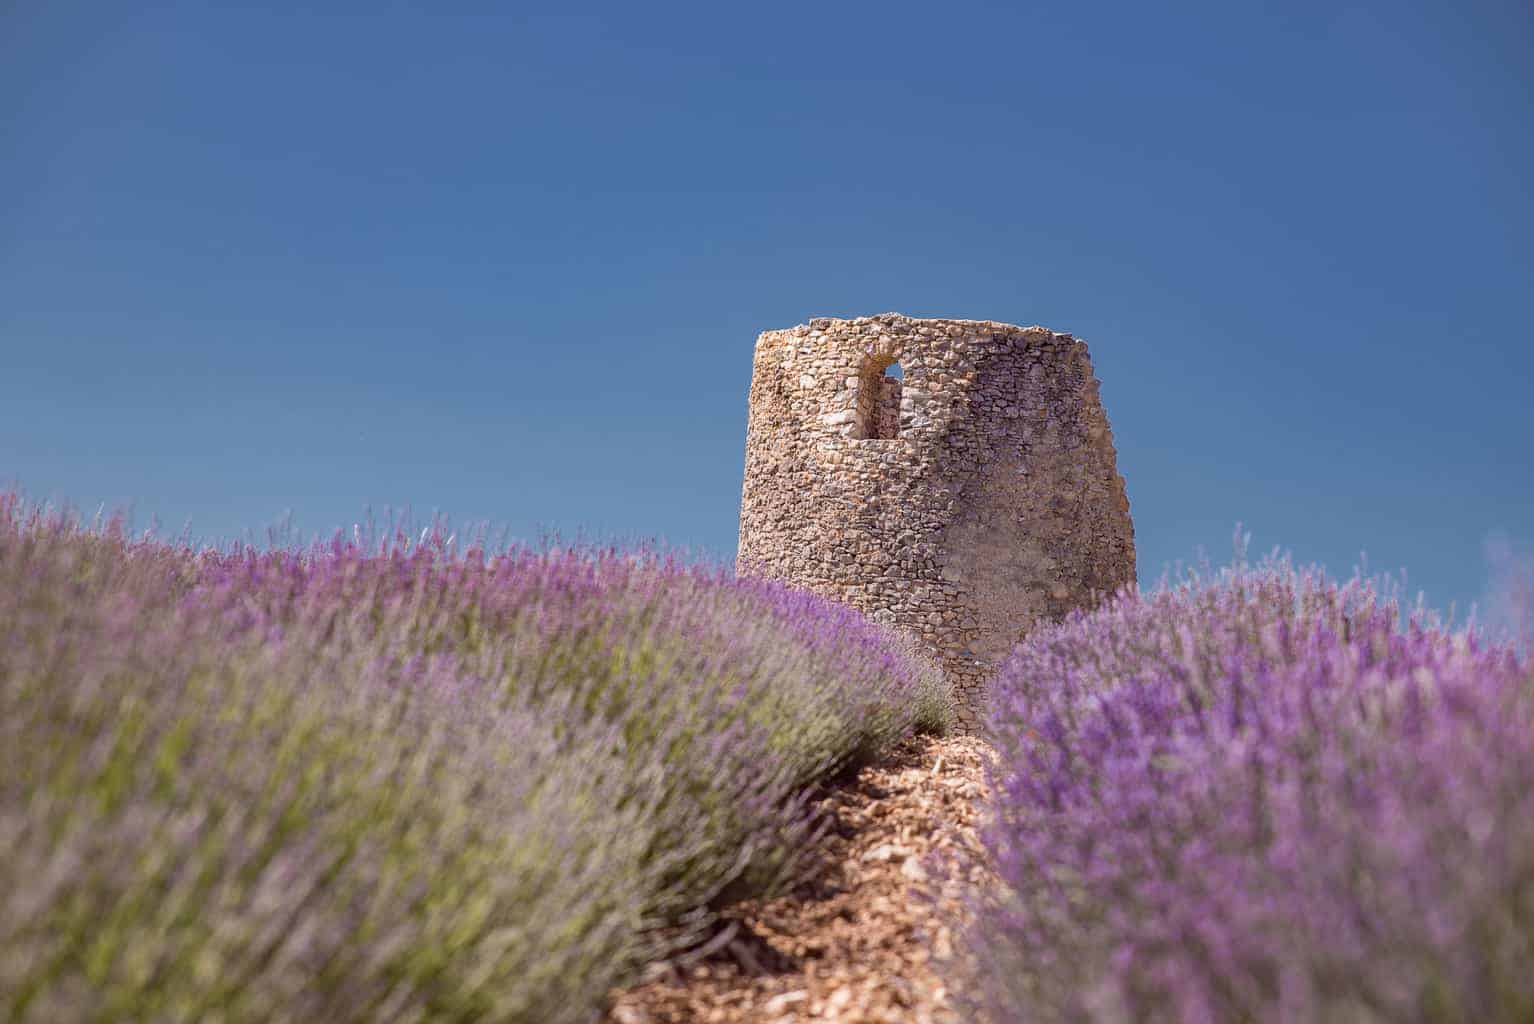 Luxury and Lavender: An Exclusive Tour to Le Château du Bois in Provence, France